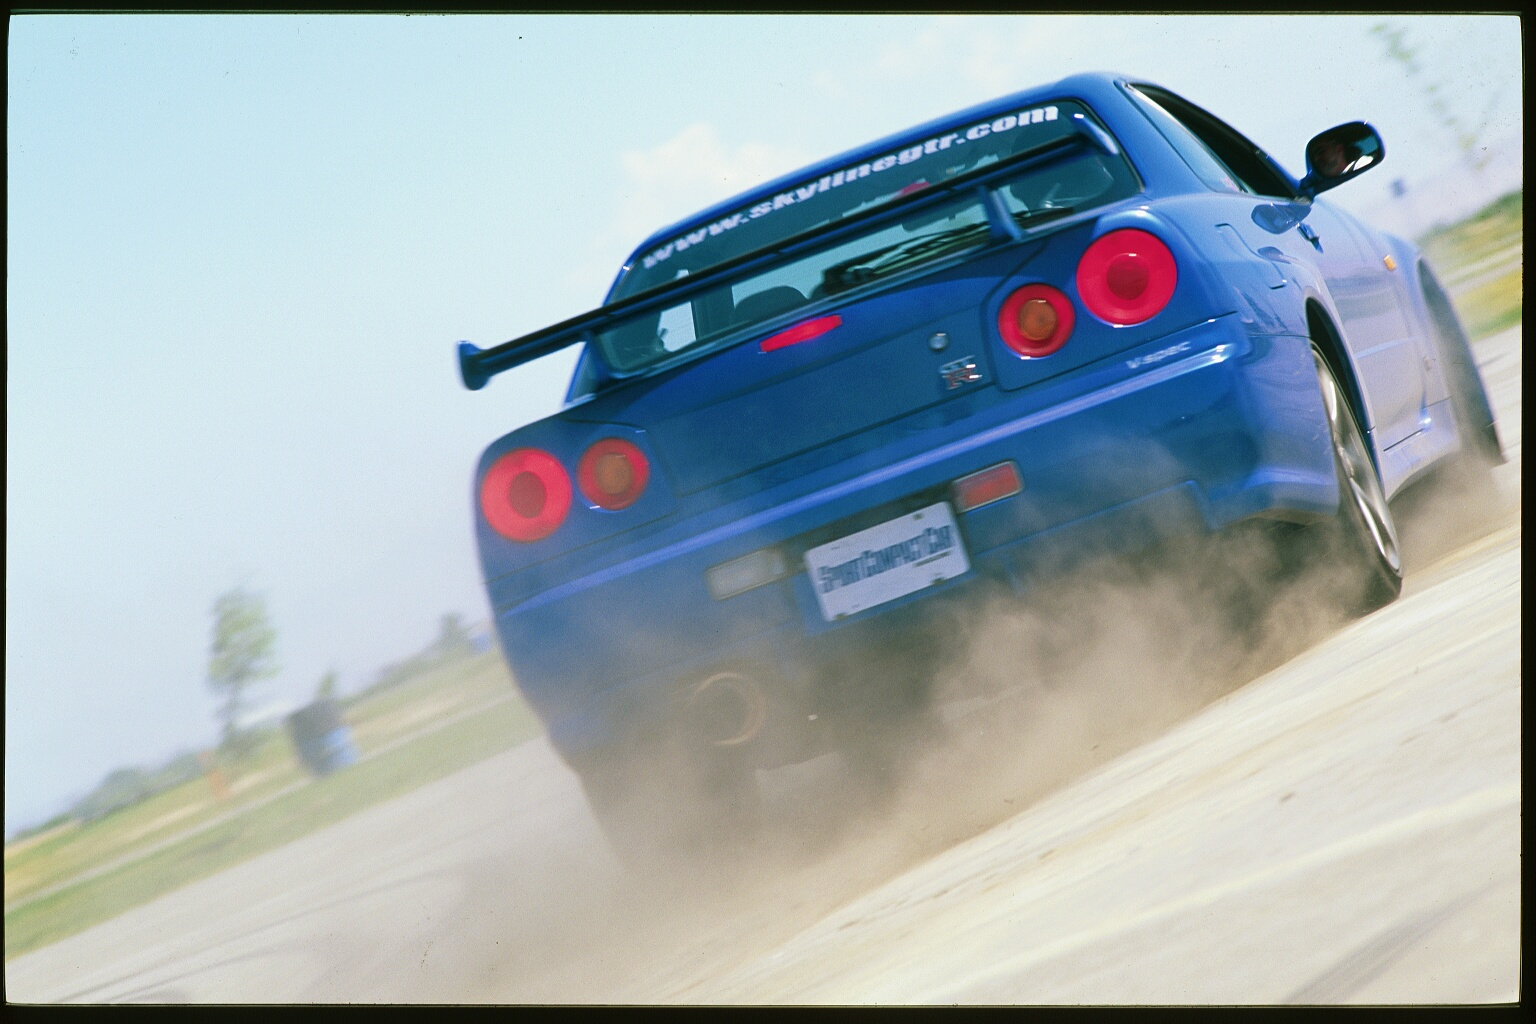 When is the R34 legal in the US?